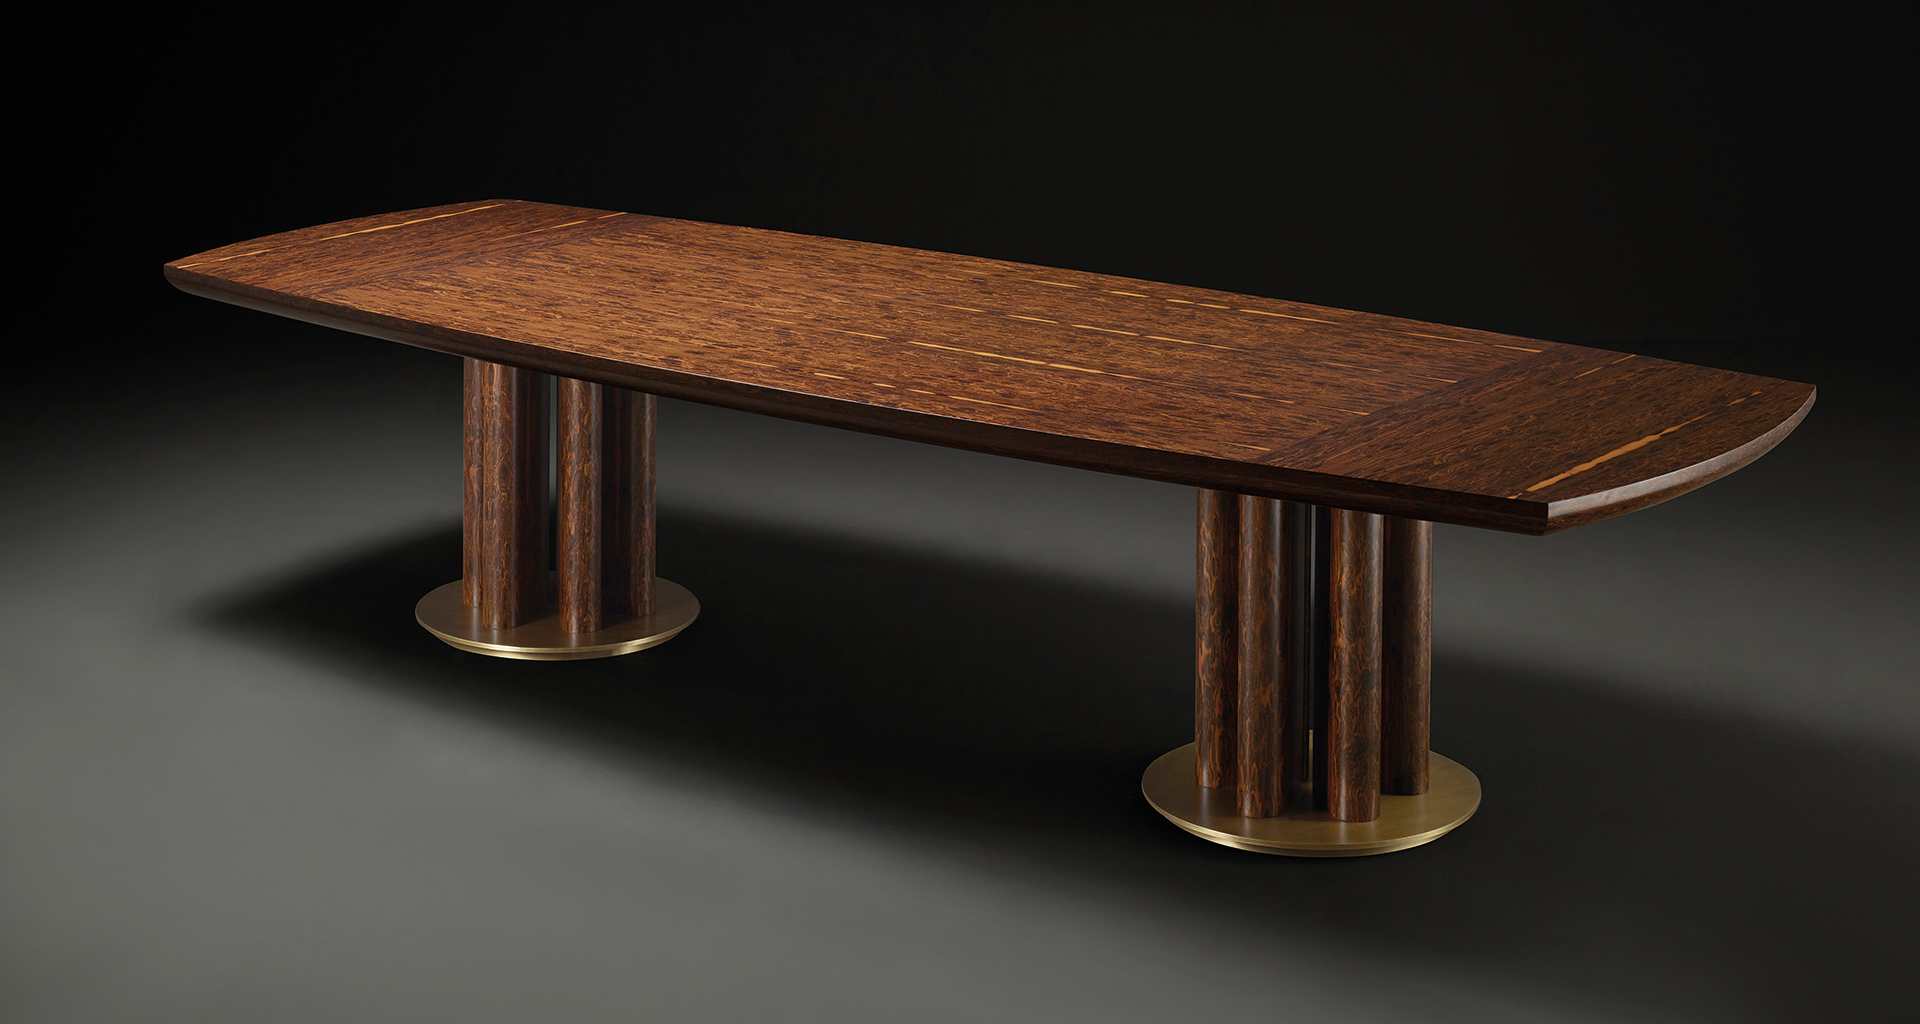 Orazio dining table that belongs to Amaranthine Tales, the 2017 Promemoria collection inspired by the amaranth wood and presented during the Milan Design Week | Promemoria